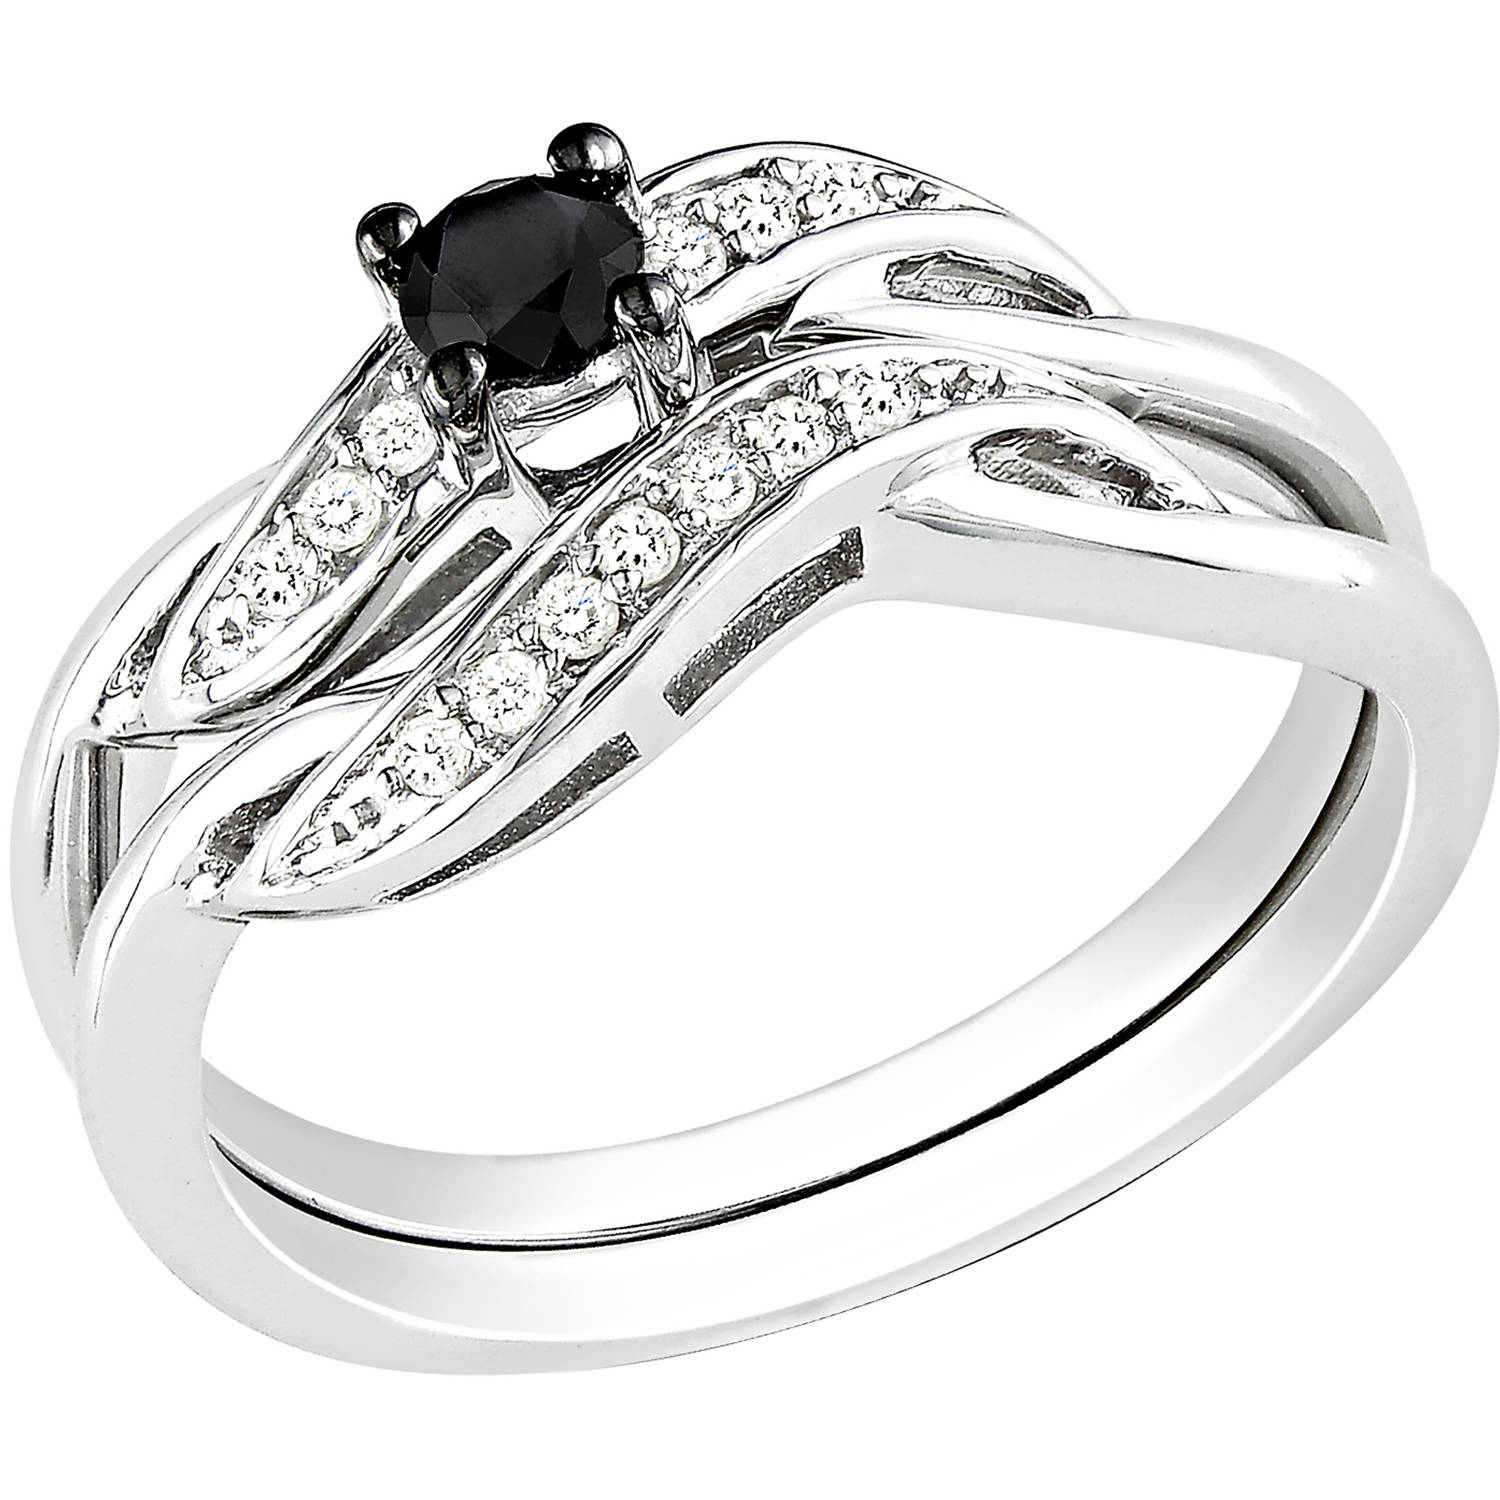 rings sterling and diamond black ip walmart bridal asteria white silver w ring set t carat com